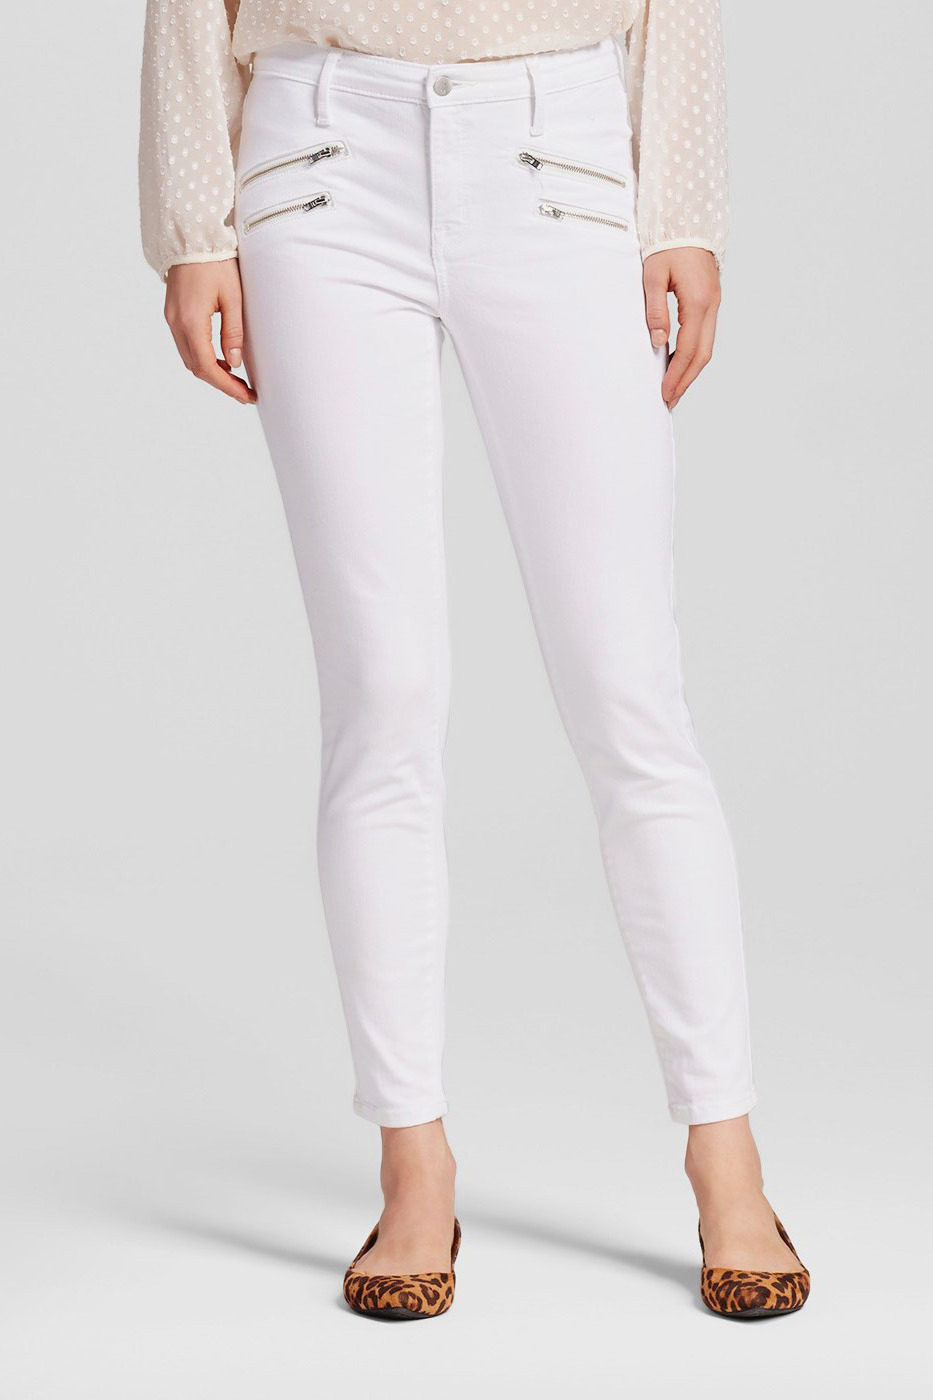 The Best White Jeans For Standing Out Year-Round forecast